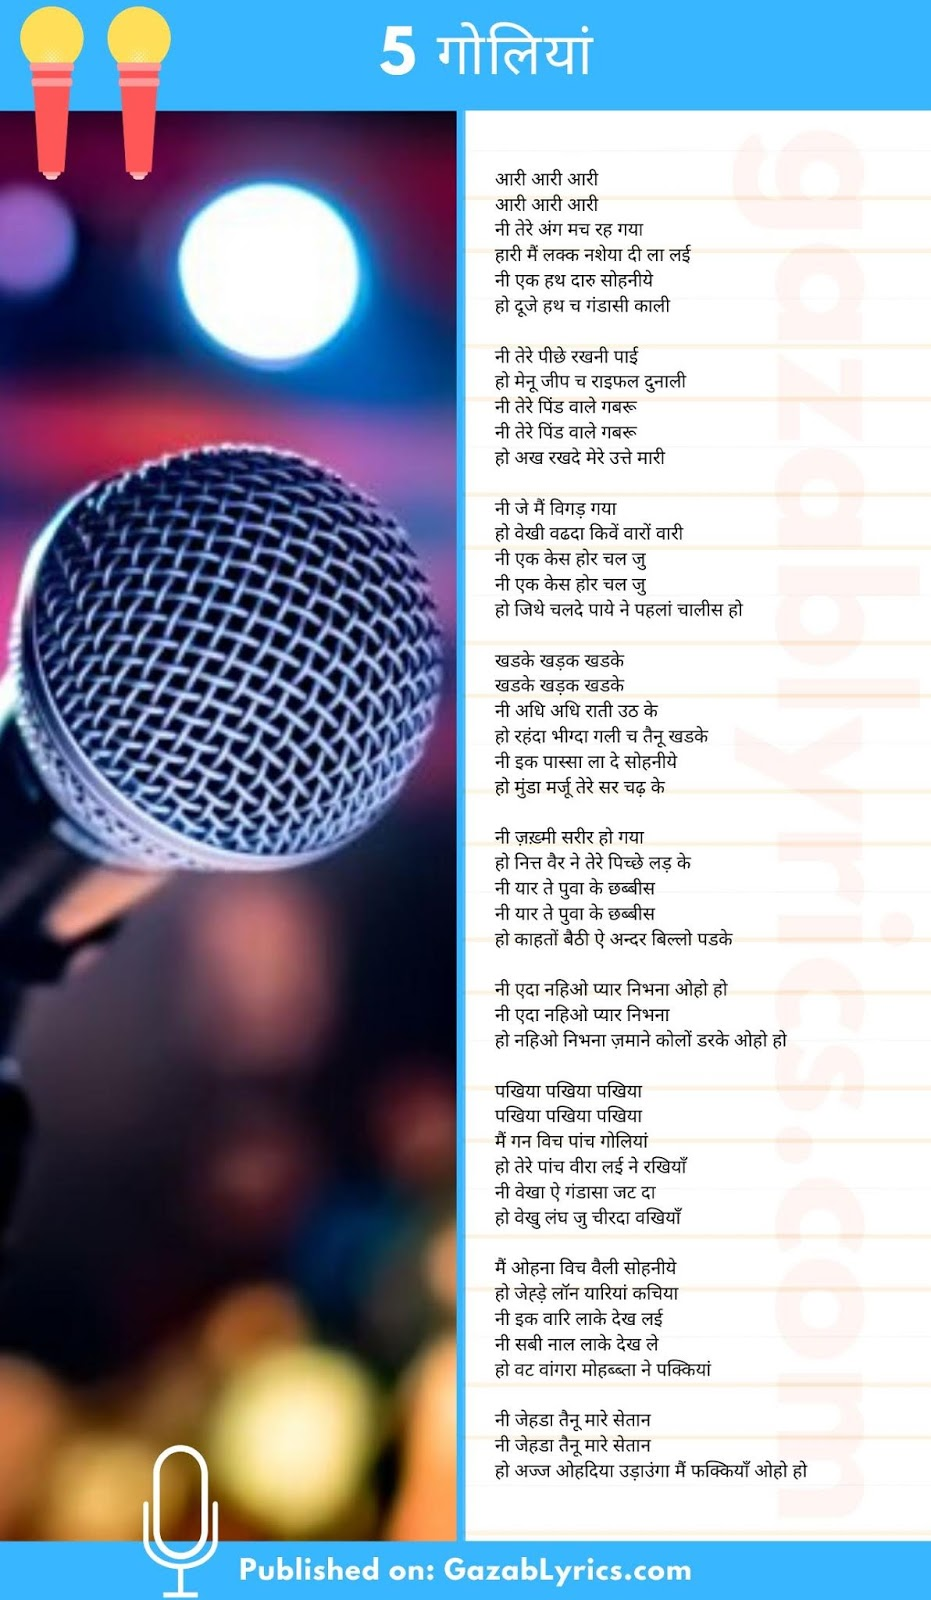 5 Goliyan song lyrics image